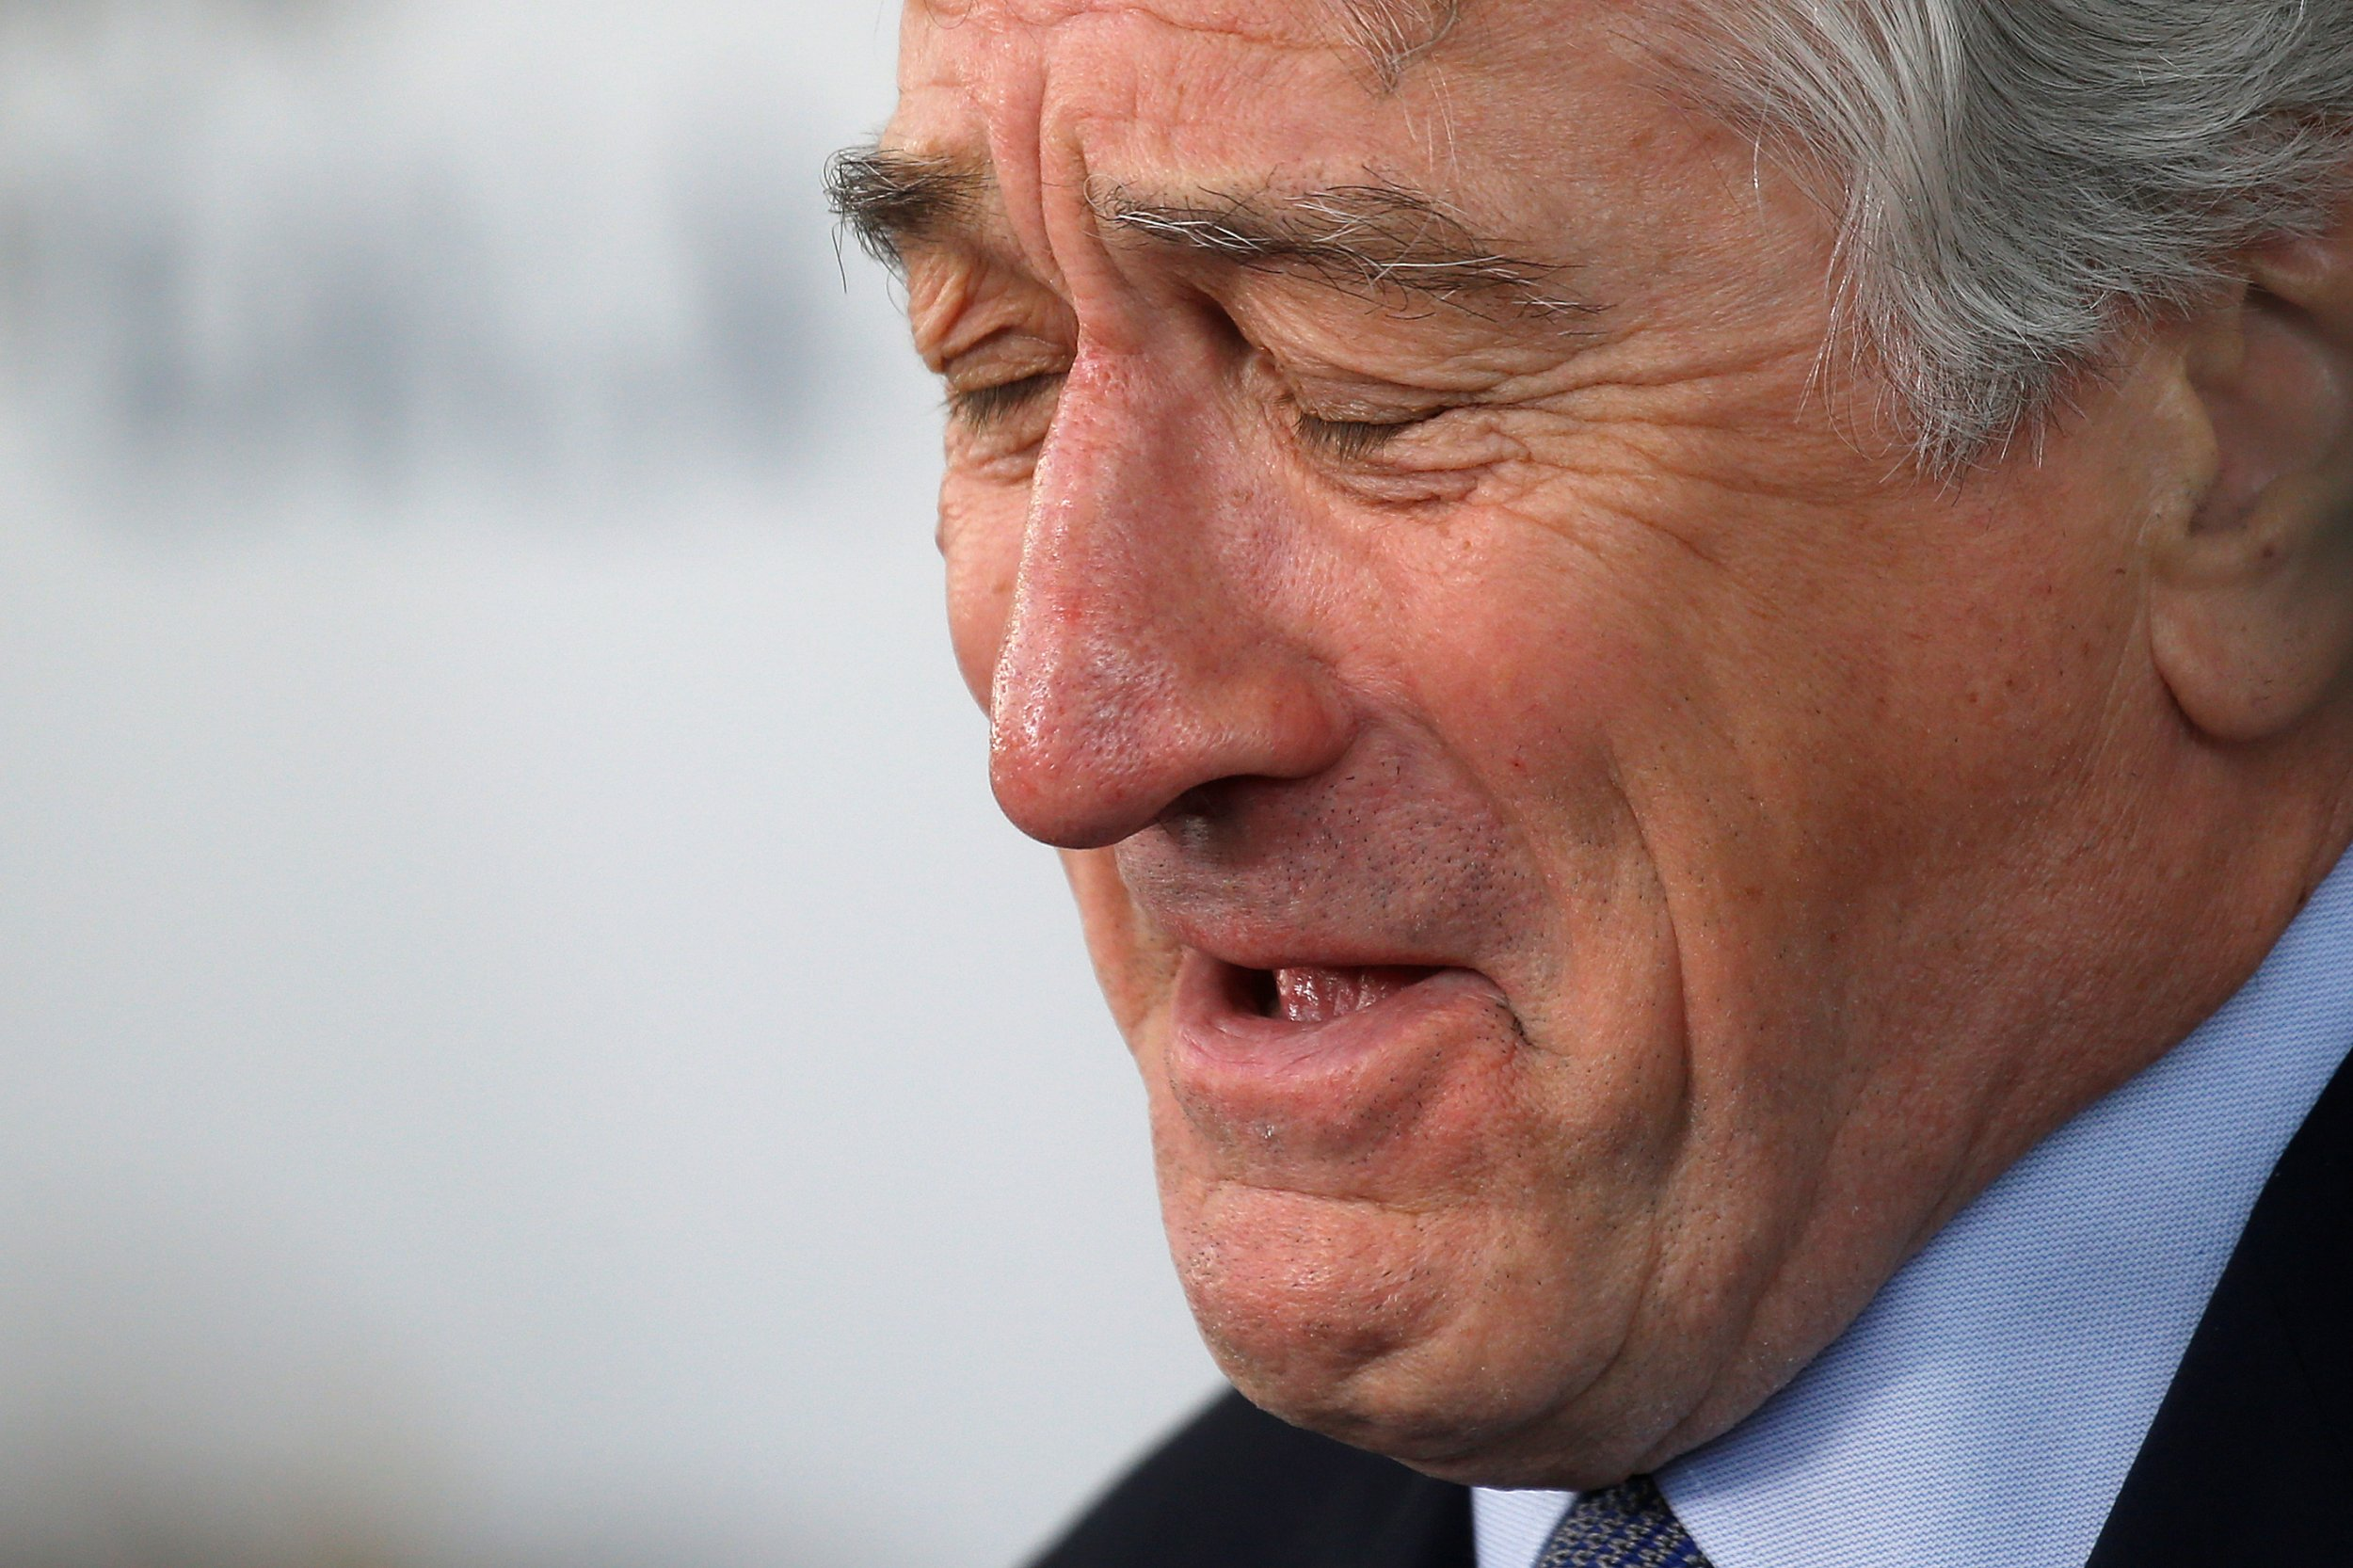 Robert De Niro Calls Trump 'Baby-in-Chief' And 'Fucking ...